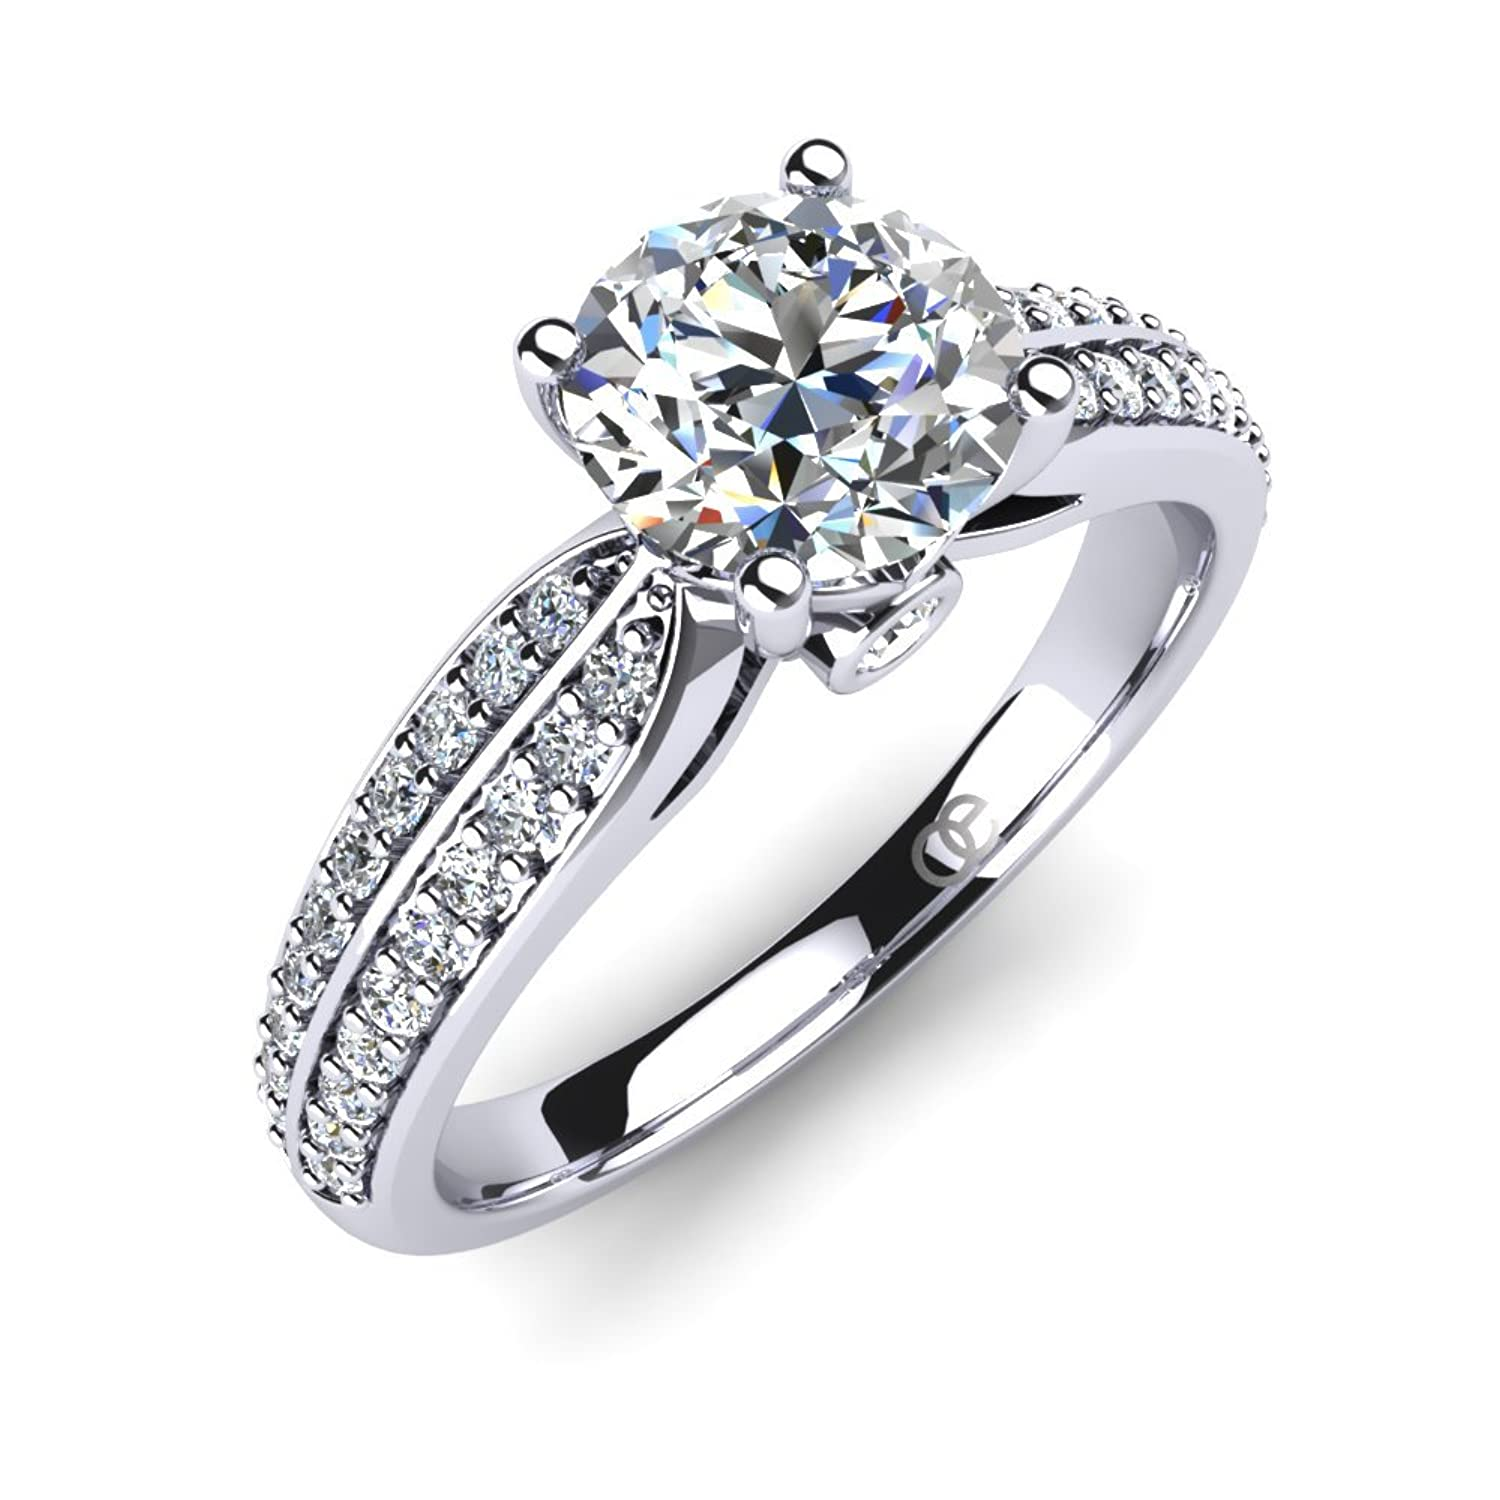 high end wedding rings. moncoeur engagement ring promise impressive combination of high-end swarovski crystals and sterling silver goes along with perfect fit: moncoeur: high end wedding rings -